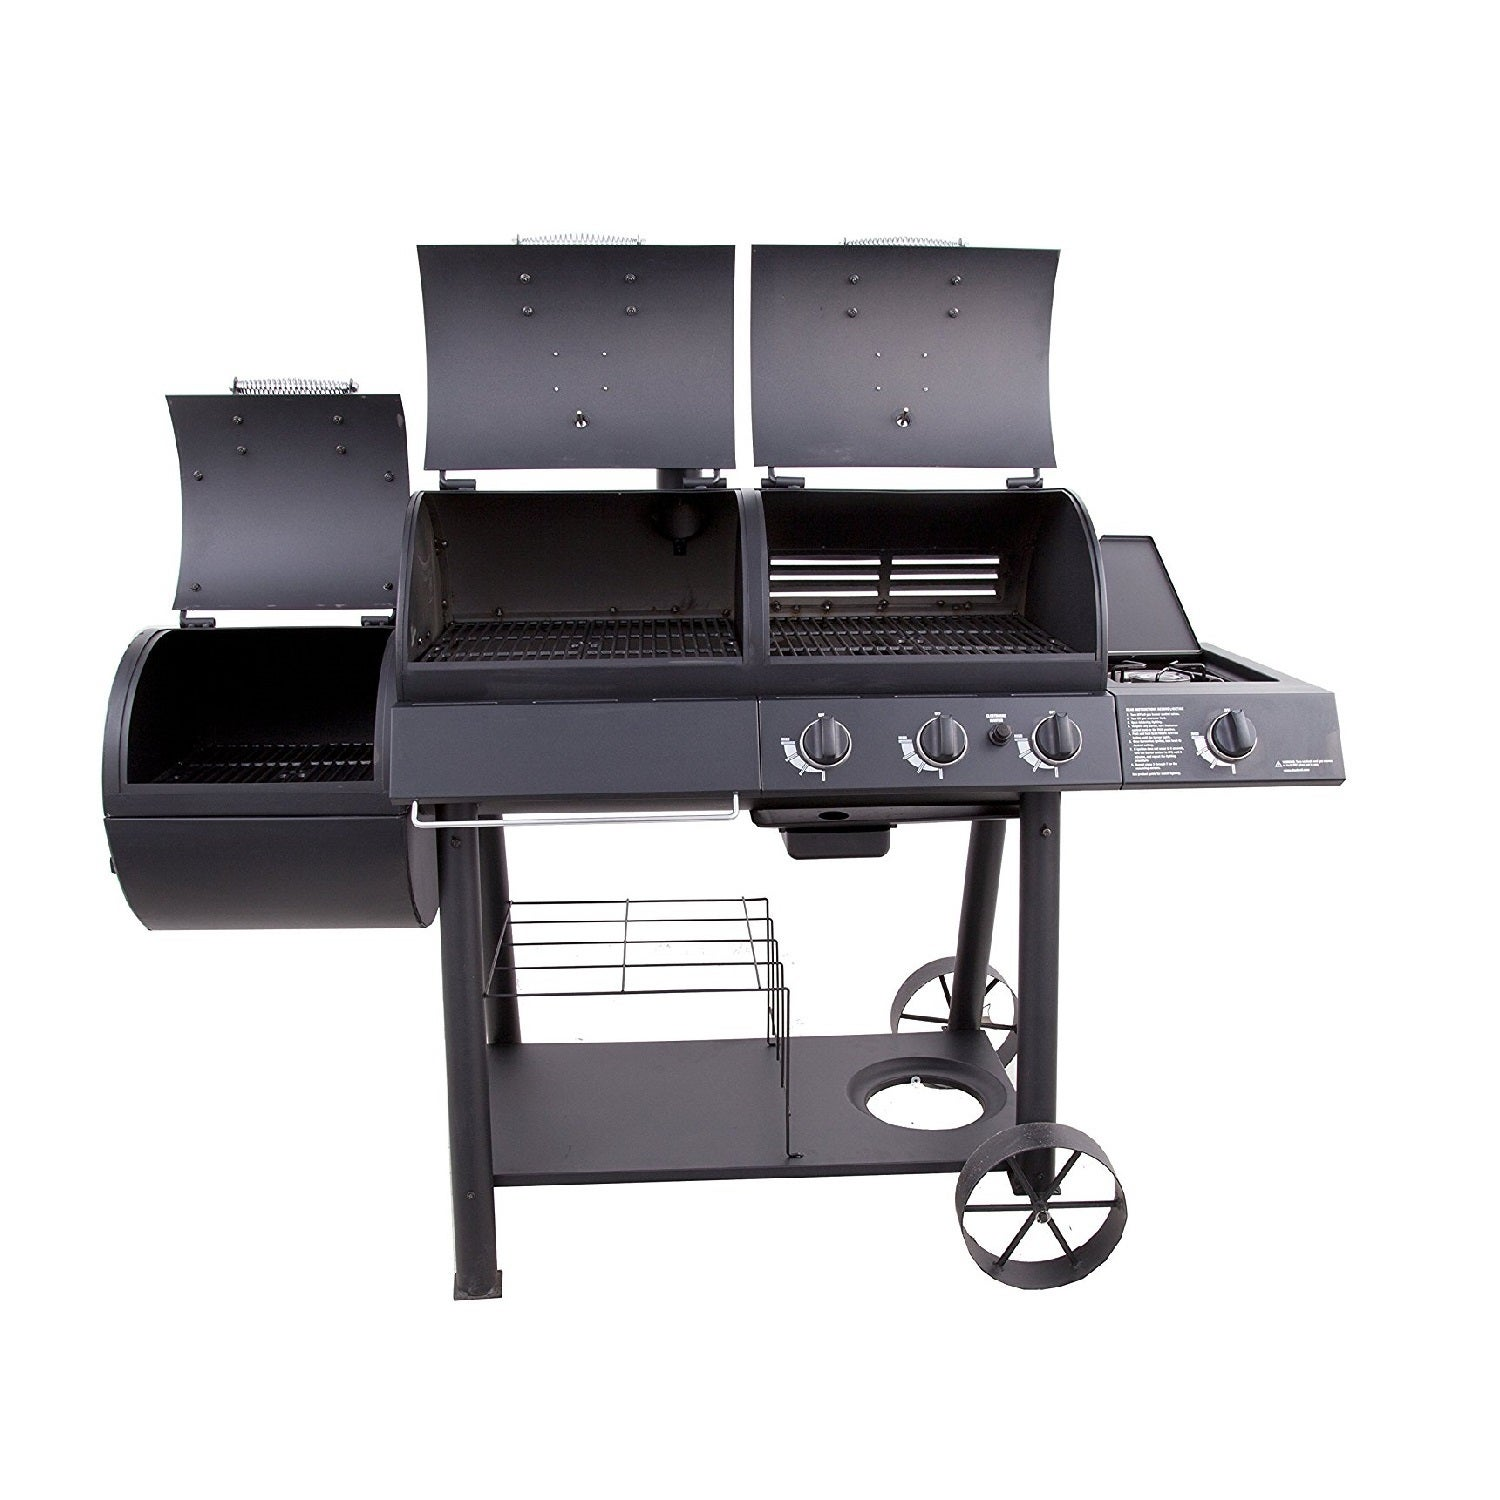 Oklahoma Joe S Charcoal And Gas Grill Smoker Combo Free Shipping Today 11484935